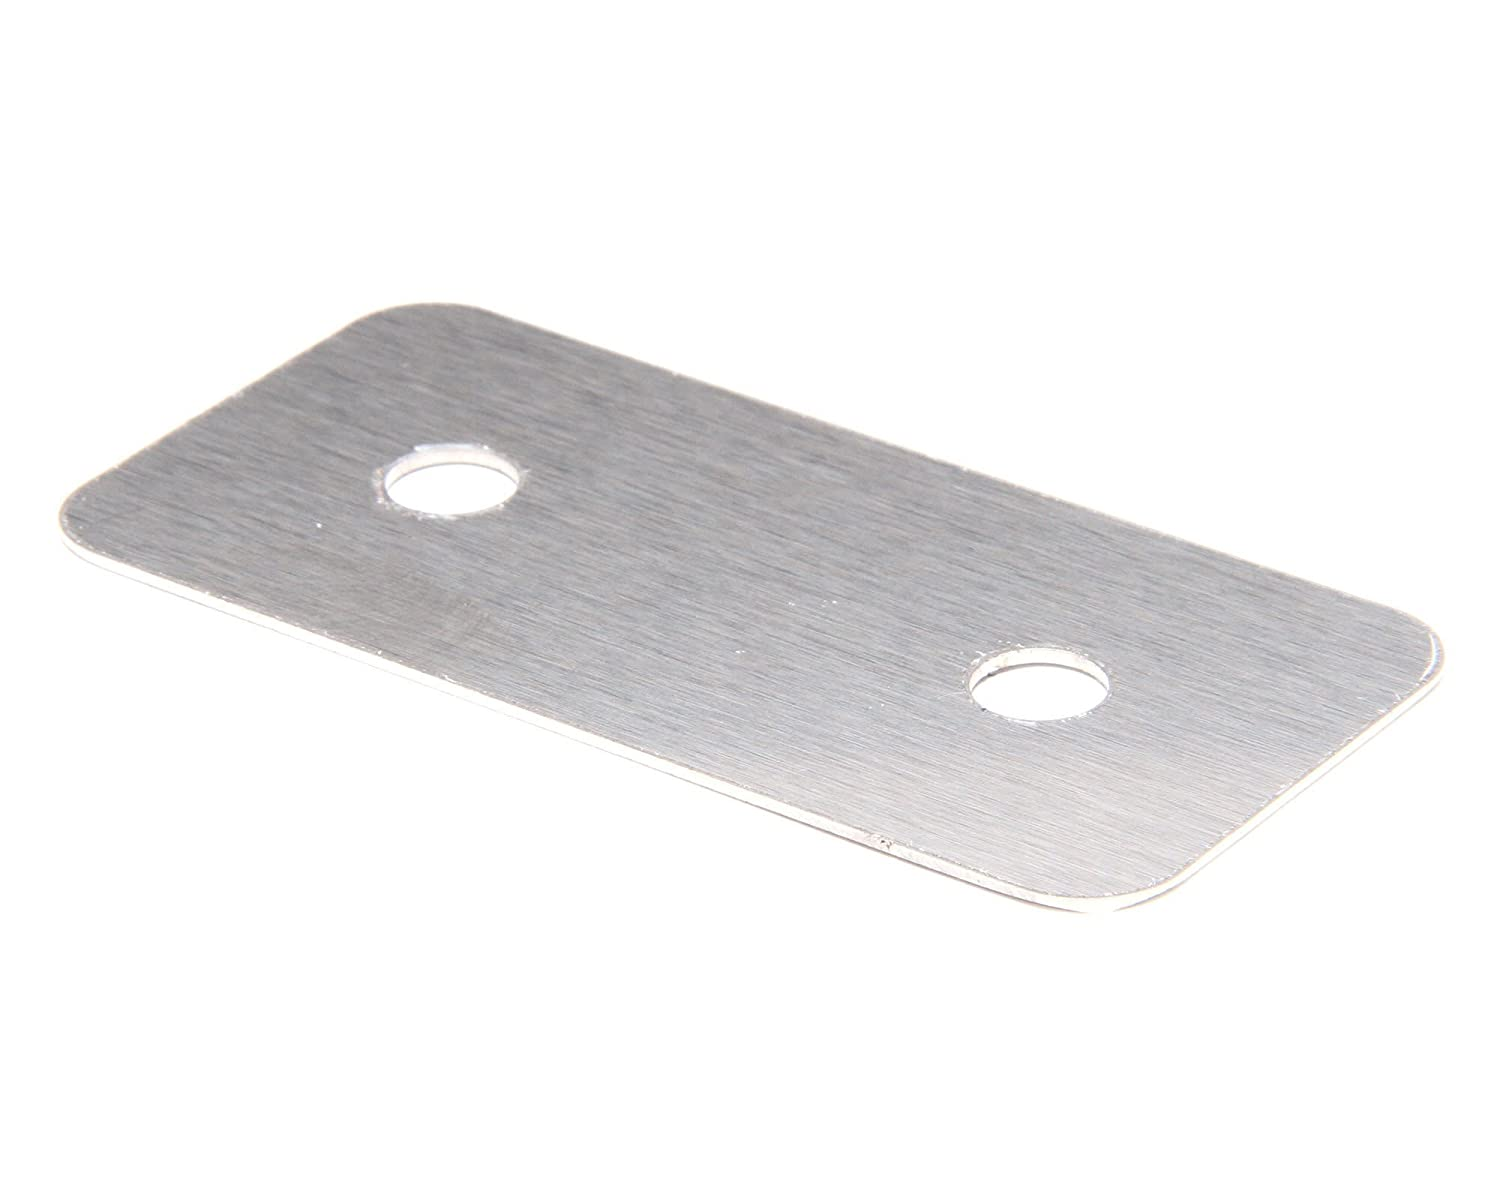 Bakers Pride Oven 21816843 PLATE COVER